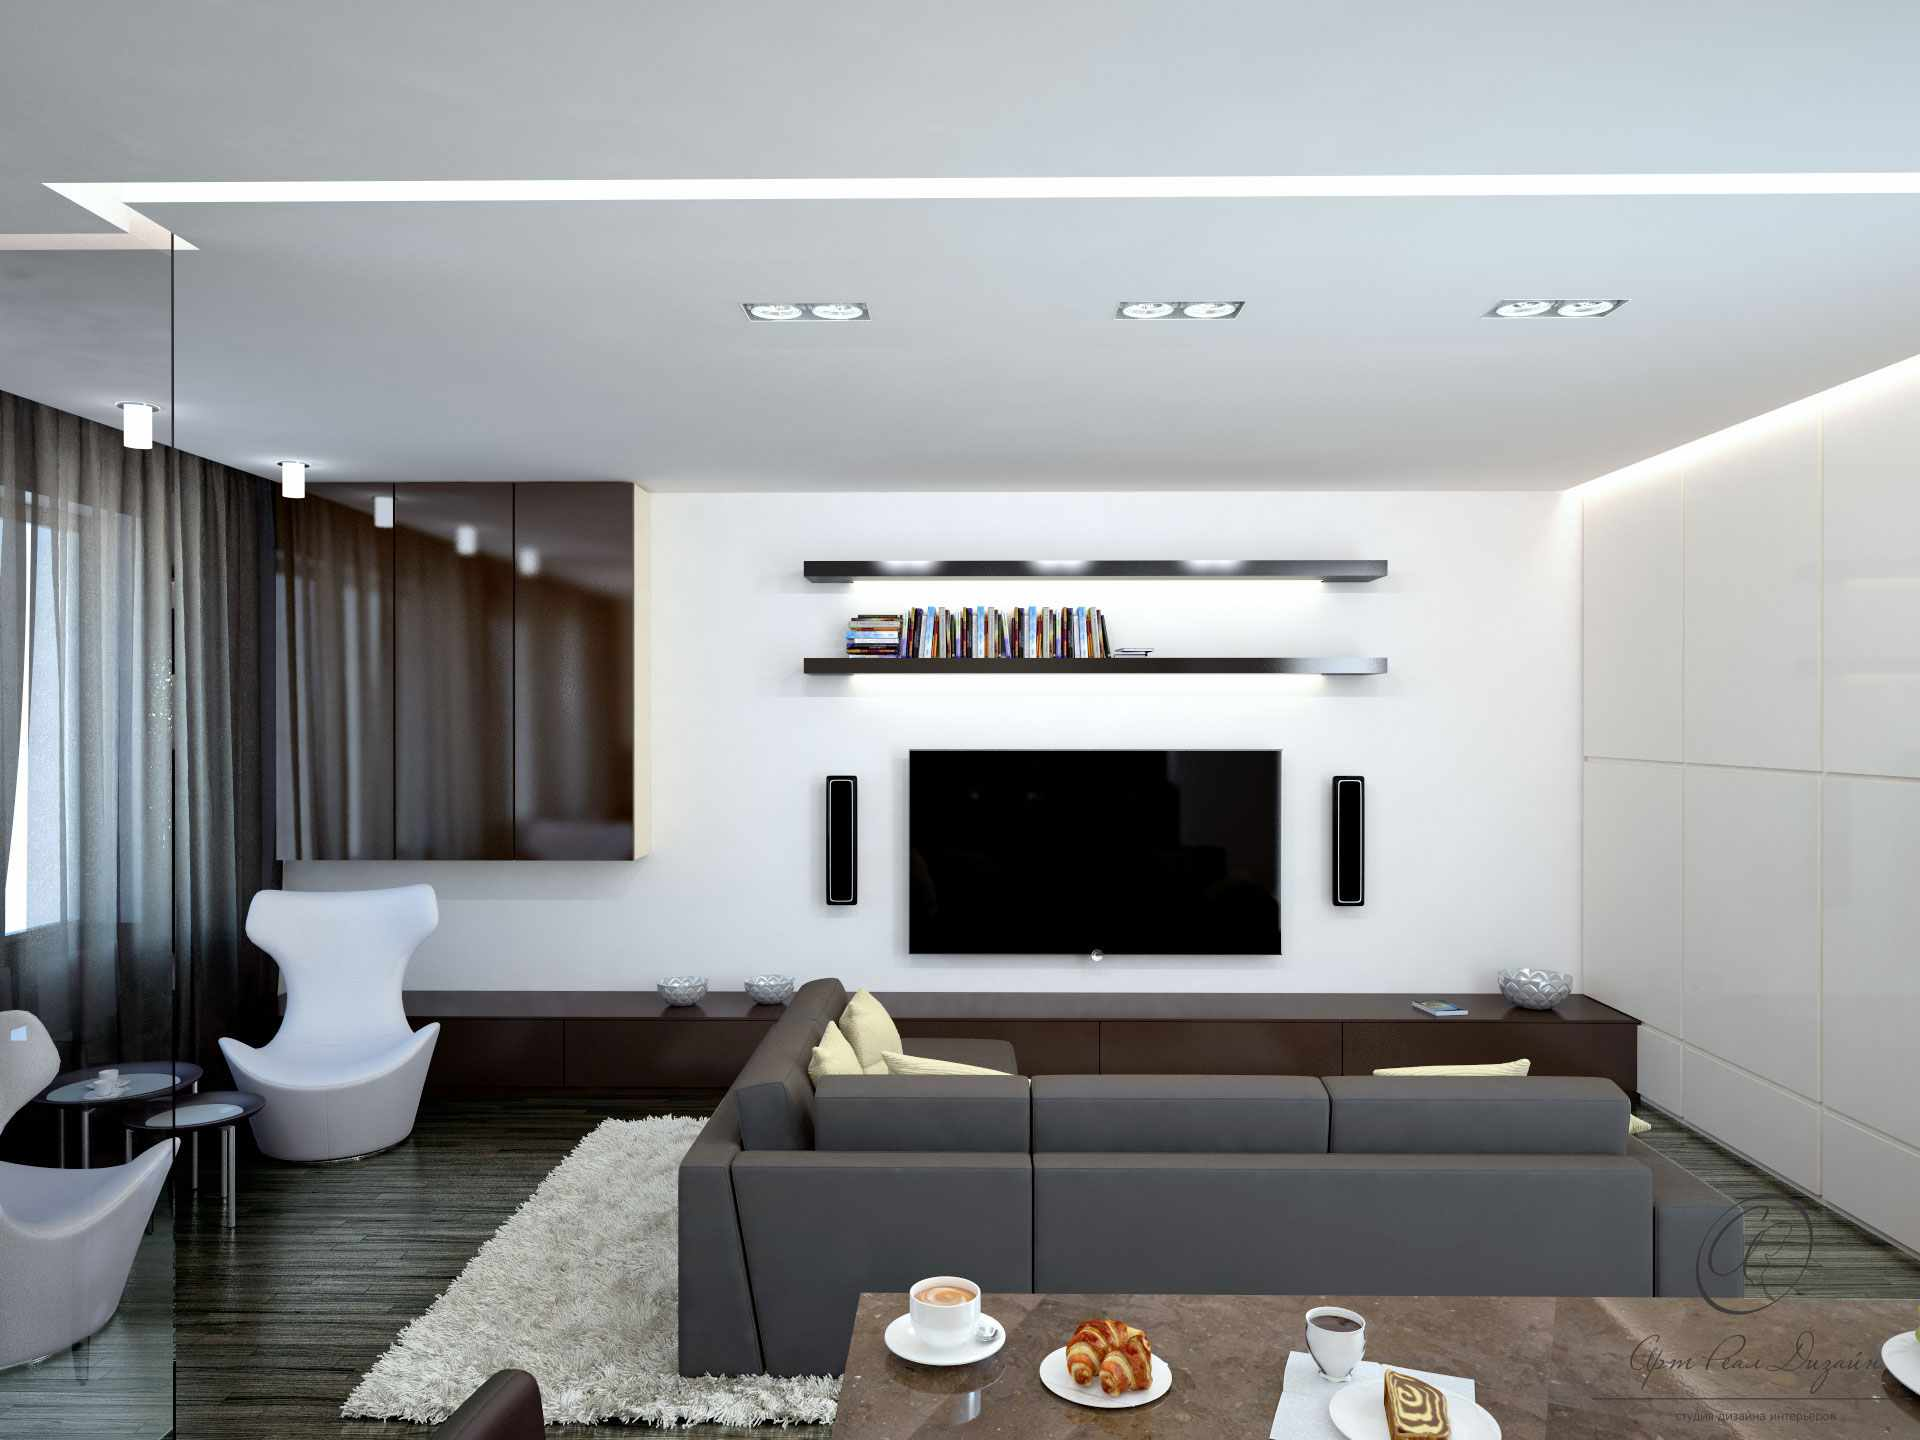 Minimalism for Living Room: Laconic Practical Design. Flat TV and open shelves on the white wall